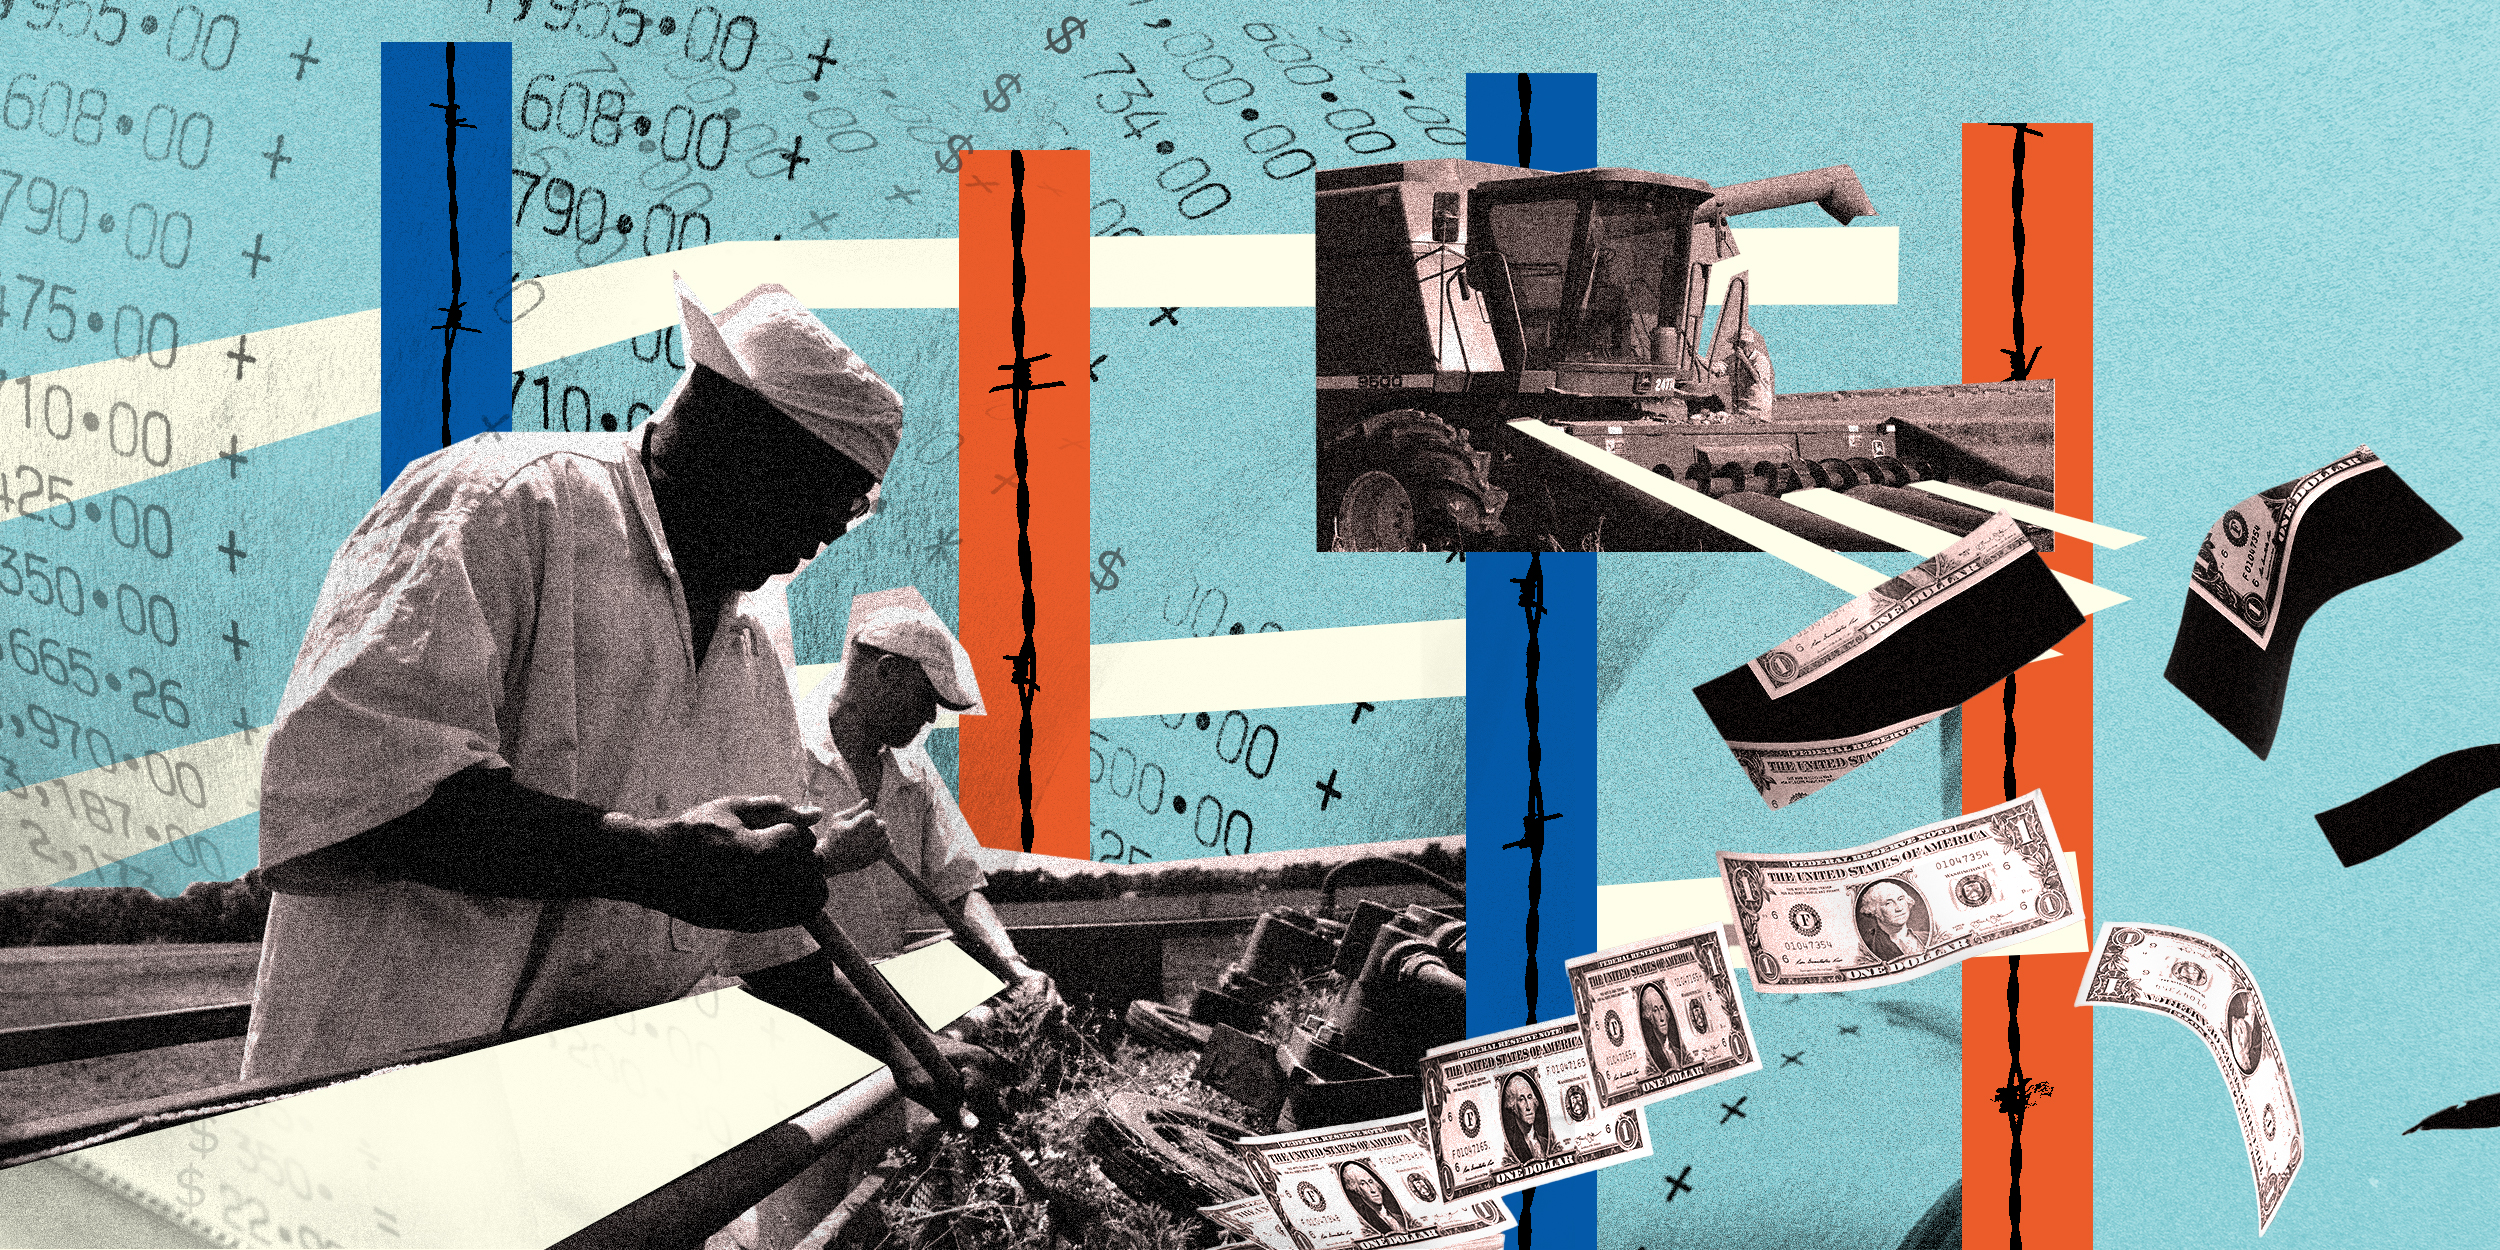 Incarcerated laborers are paid minuscule wages. Why are prisons still losing money?